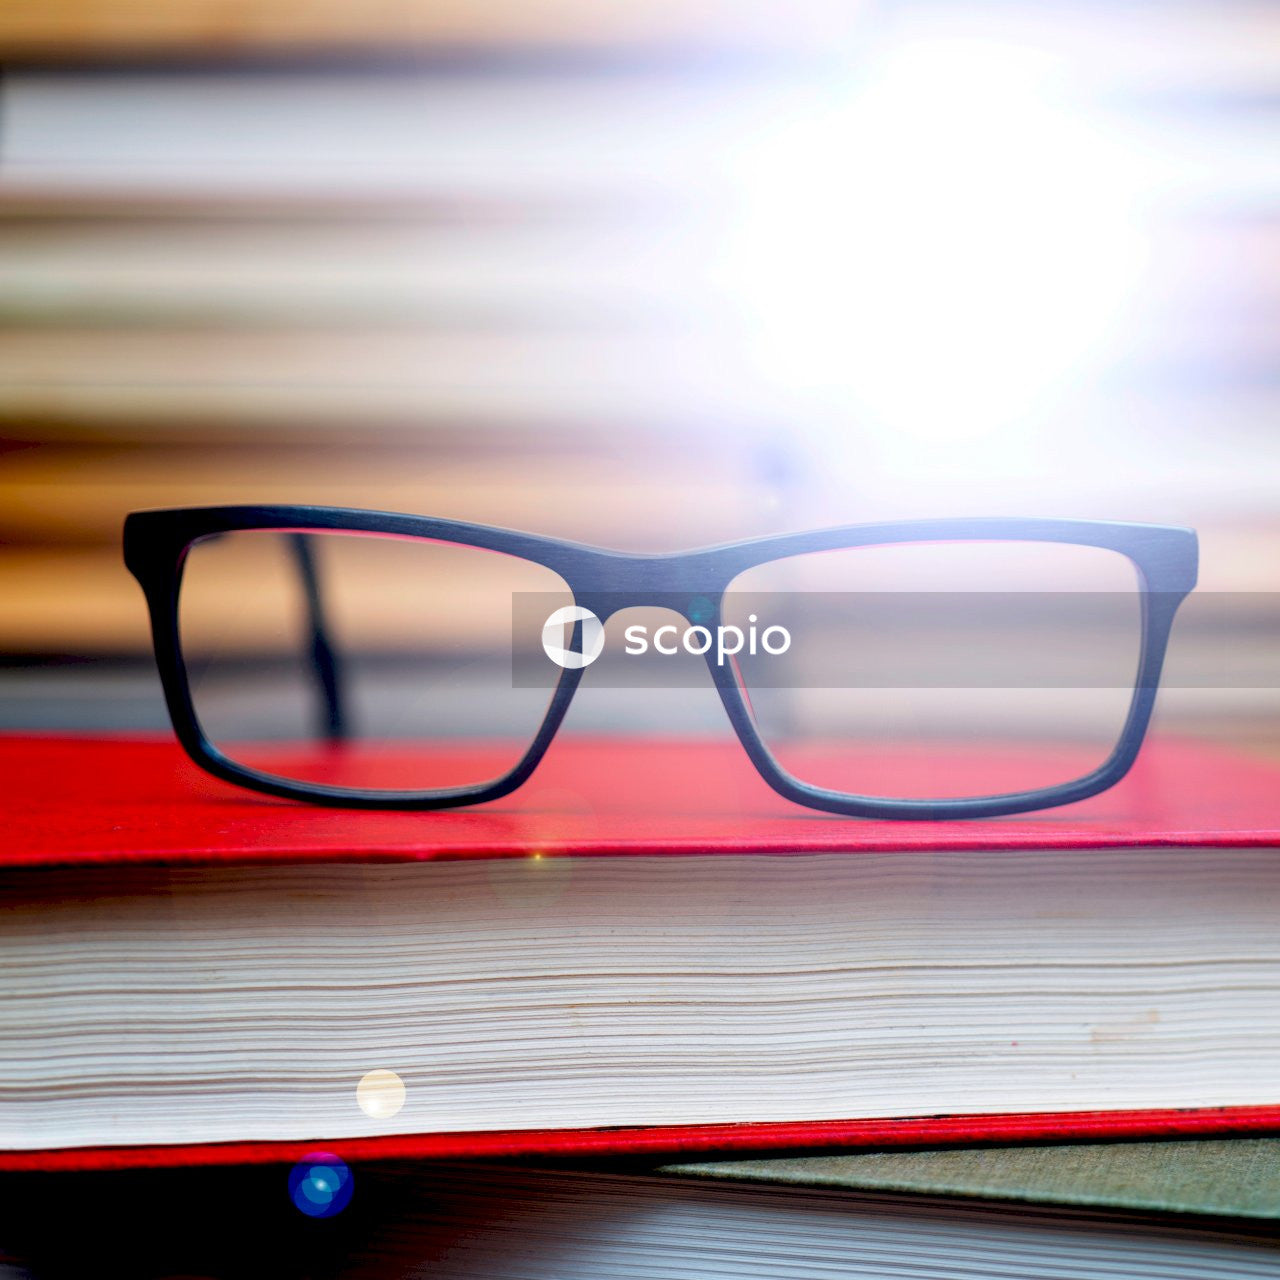 Black framed eyeglasses on red and white striped textile